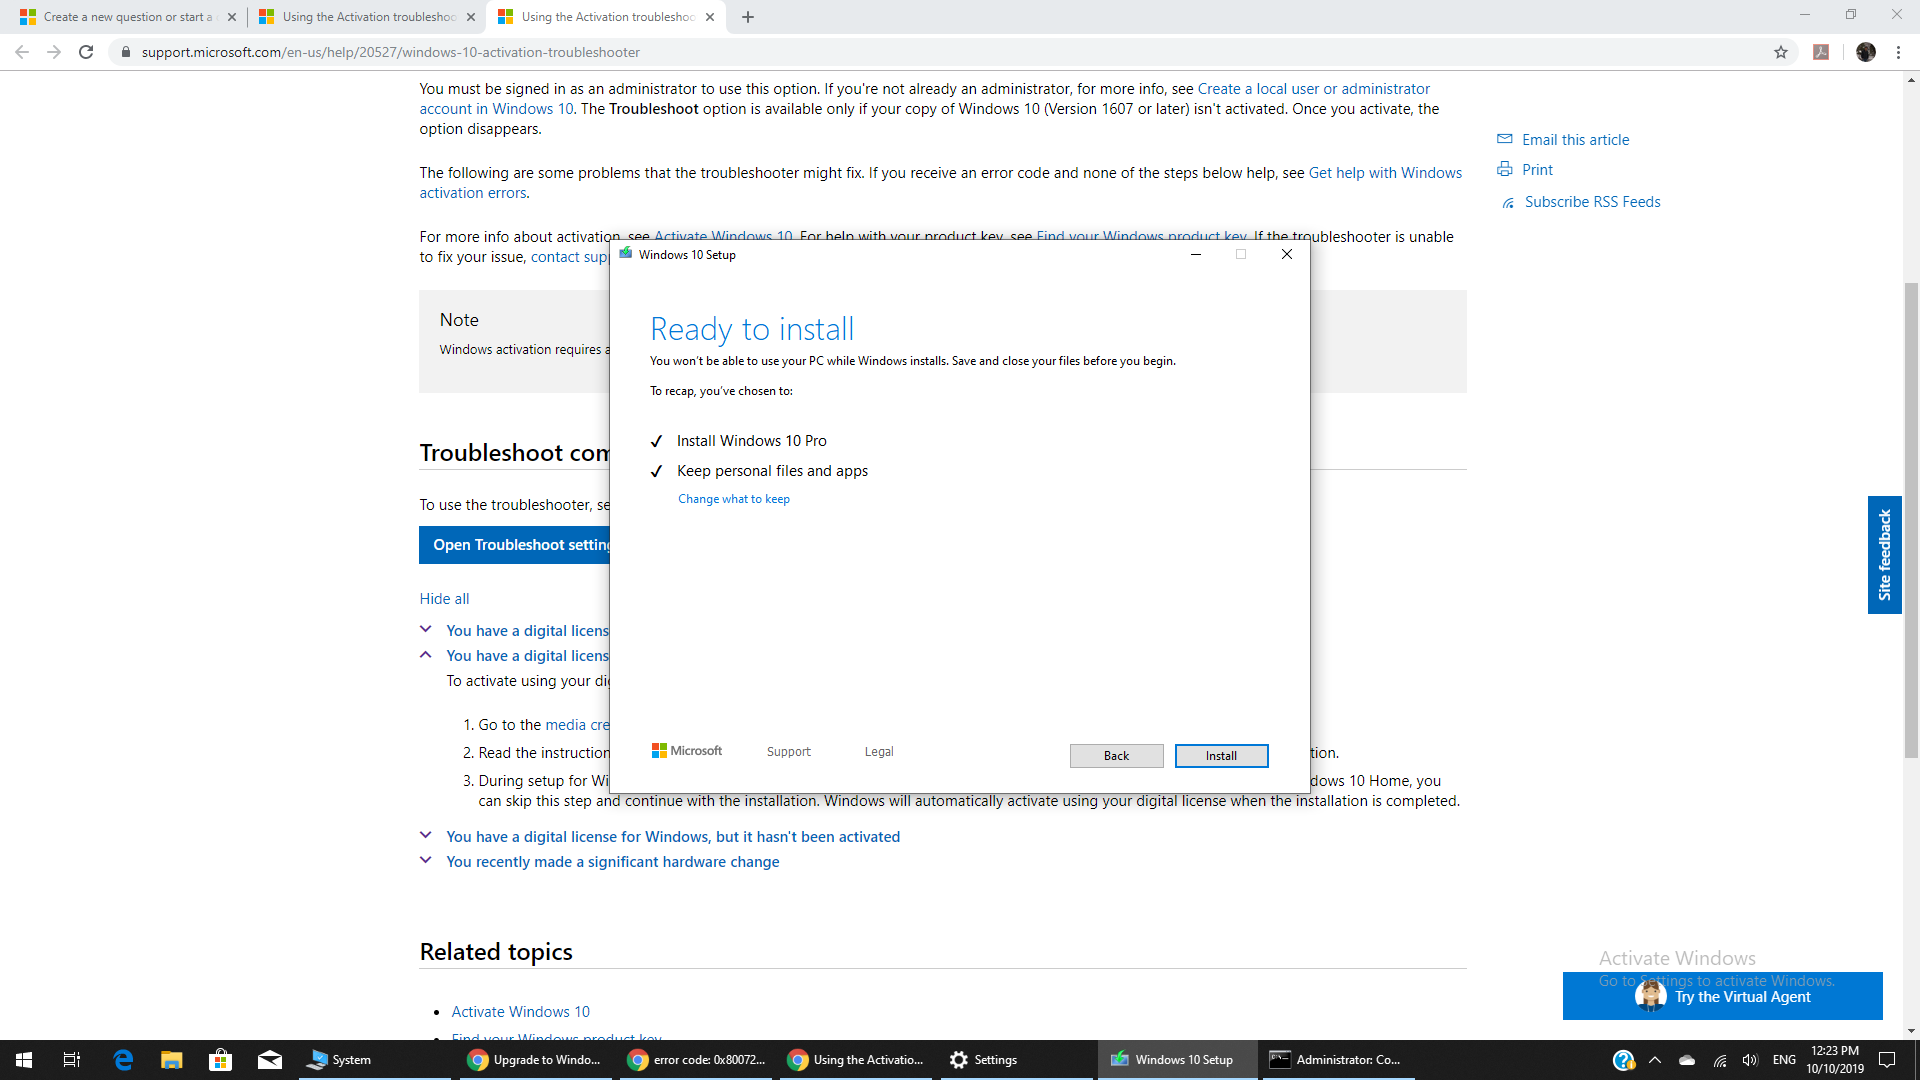 I Have used windows recovery  and reinstall  windows 10 after recover using recovery now  I... 86c69c59-3832-4da2-8f84-c0cb67c45f6d?upload=true.png